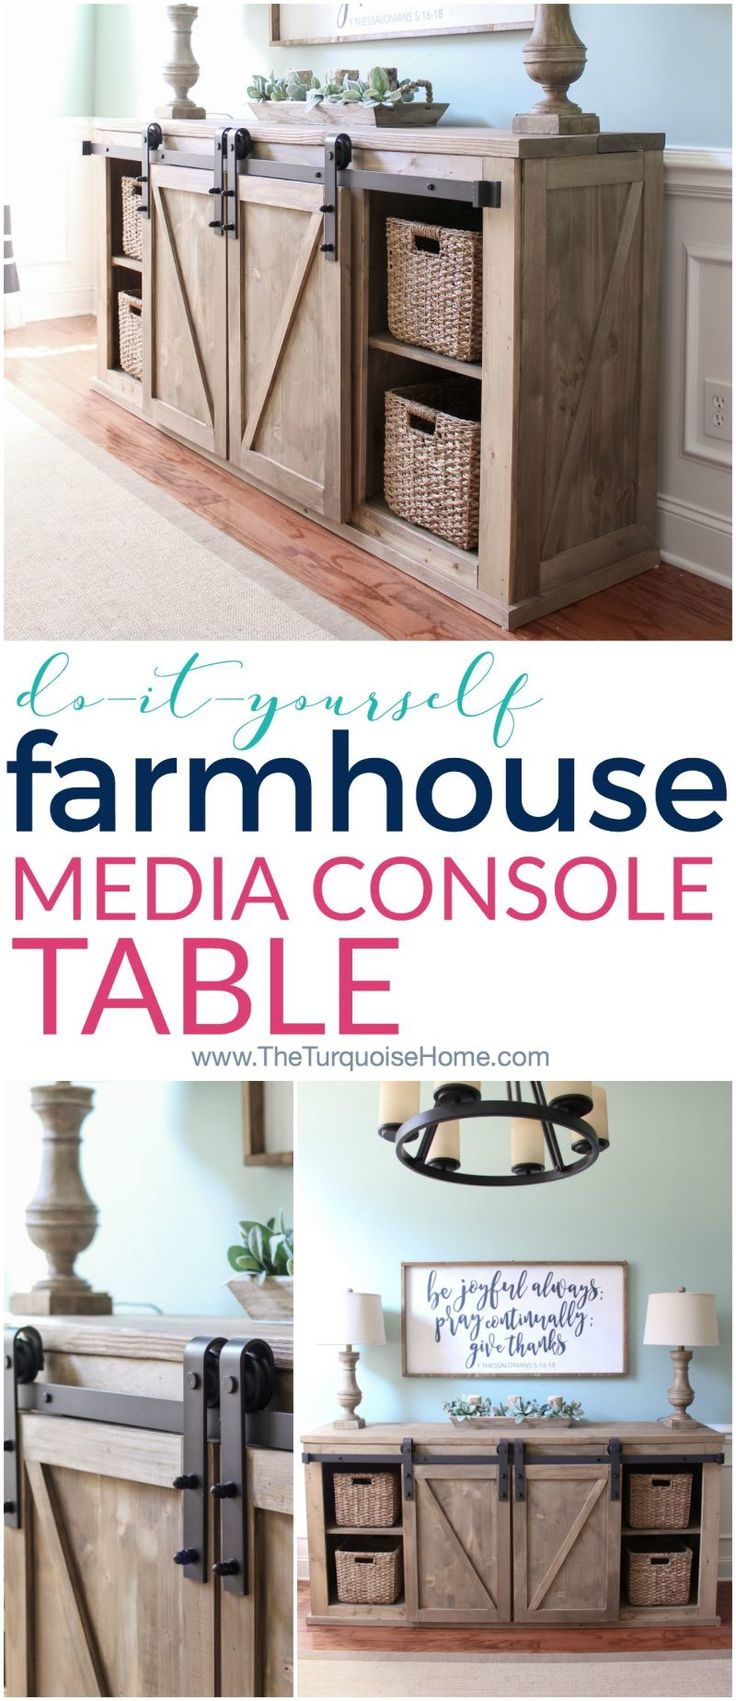 DIY Farmhouse Media Console Table - all the plans to make it yourself! | sliding barn door | weathered stain | Old Barn Milk Paint